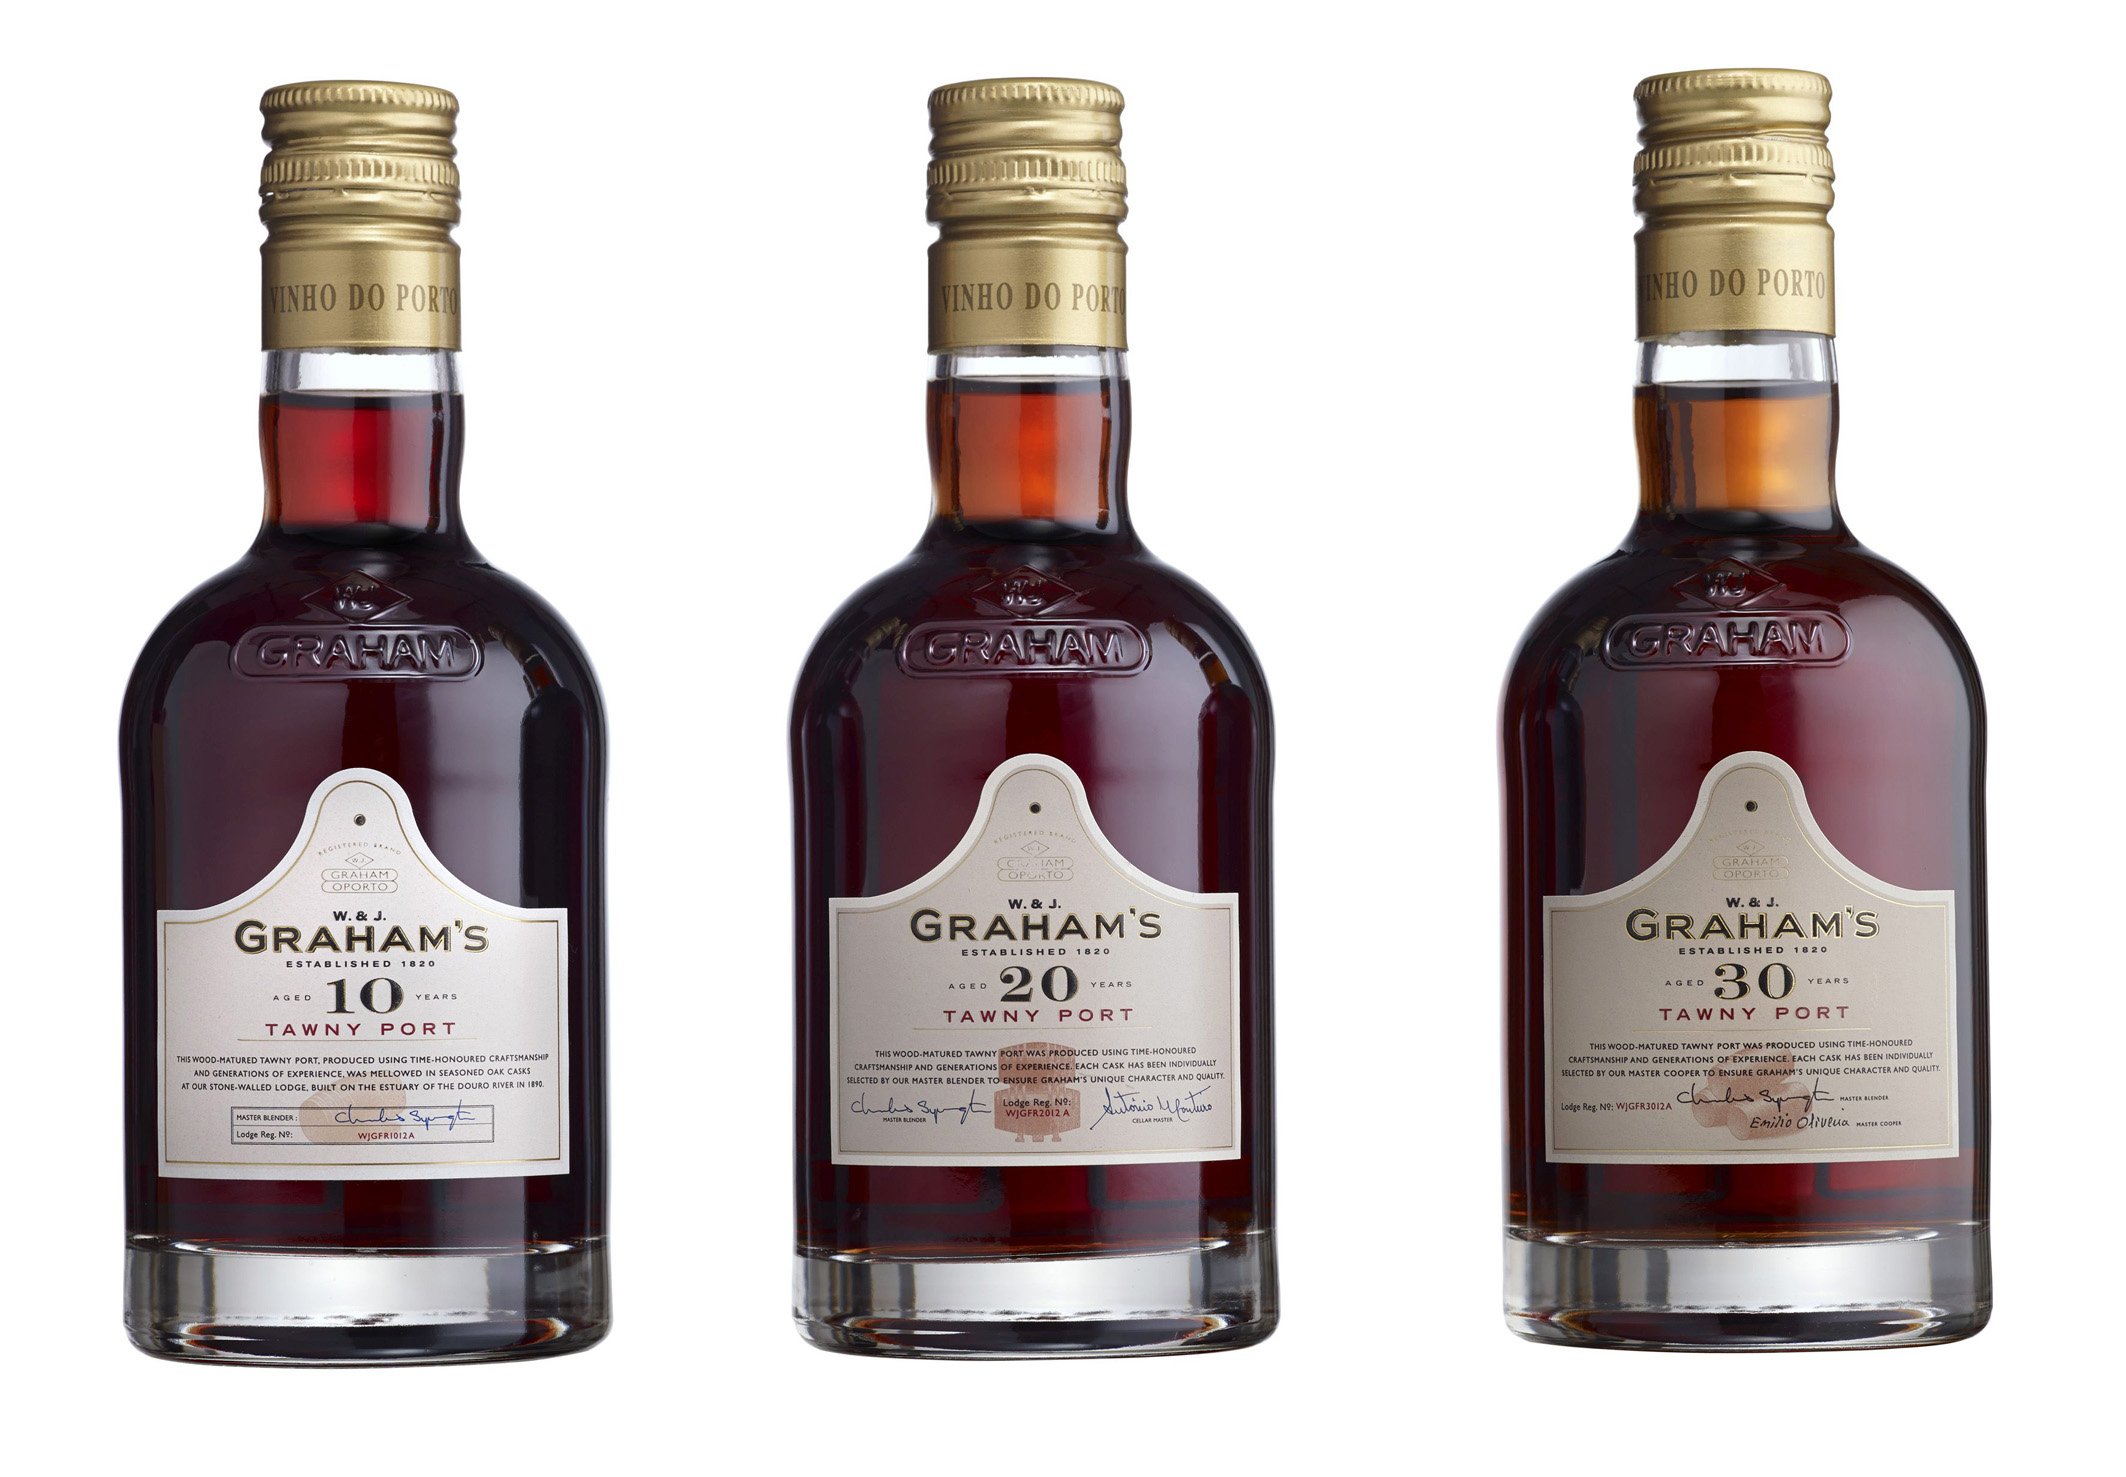 Range of Graham's tawny ports